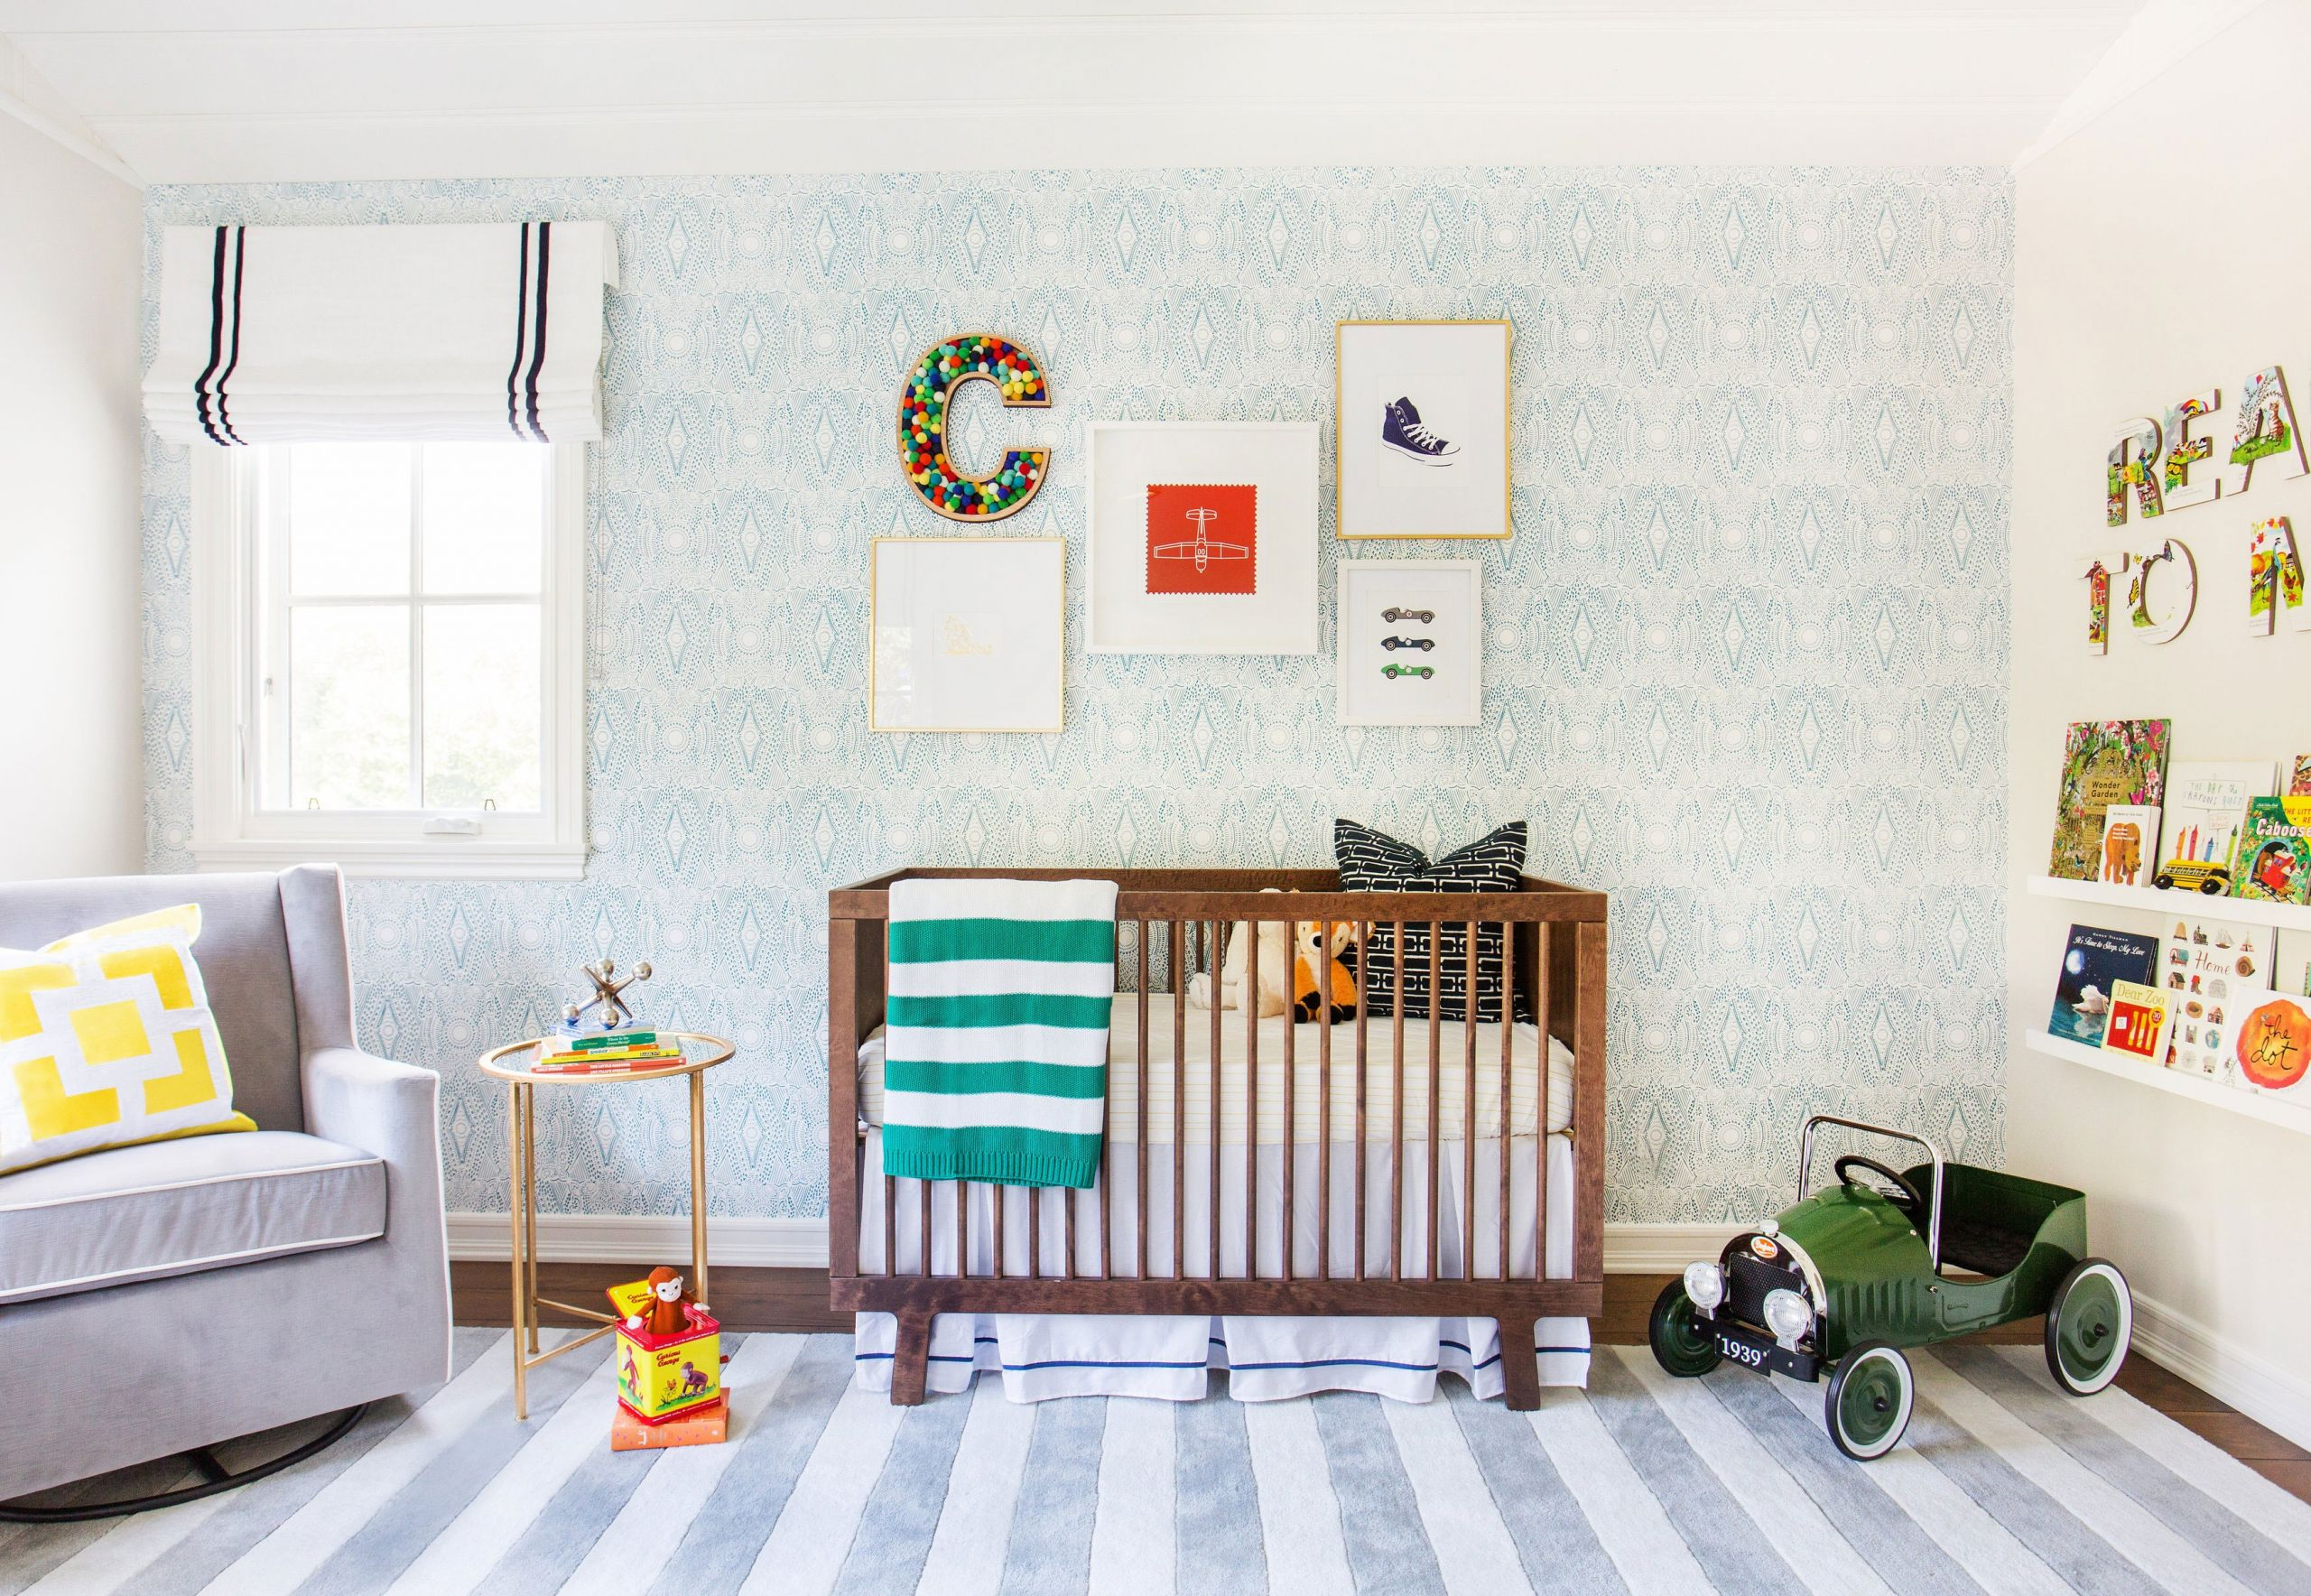 Kids Room Stuff  3 Wall Decor Ideas Perfect for Kids' Rooms s